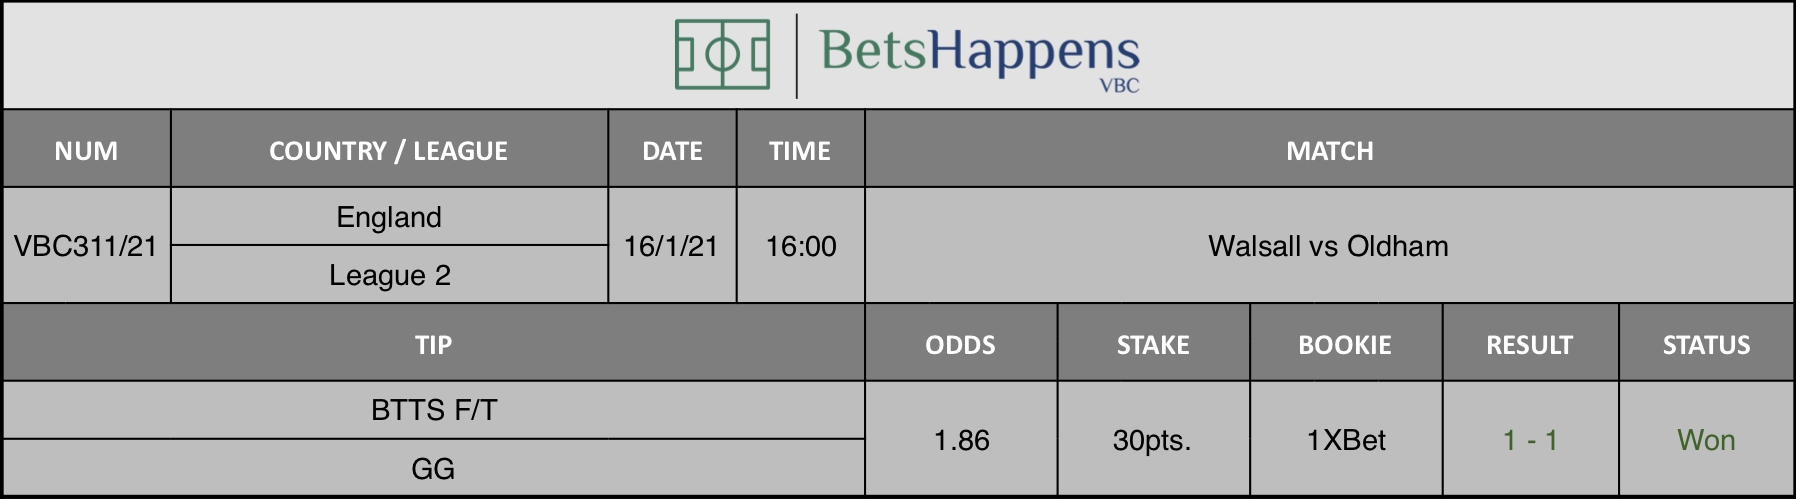 Results of our tip for the Walsall vs Oldham match where BTTS F/T GG is recommended.